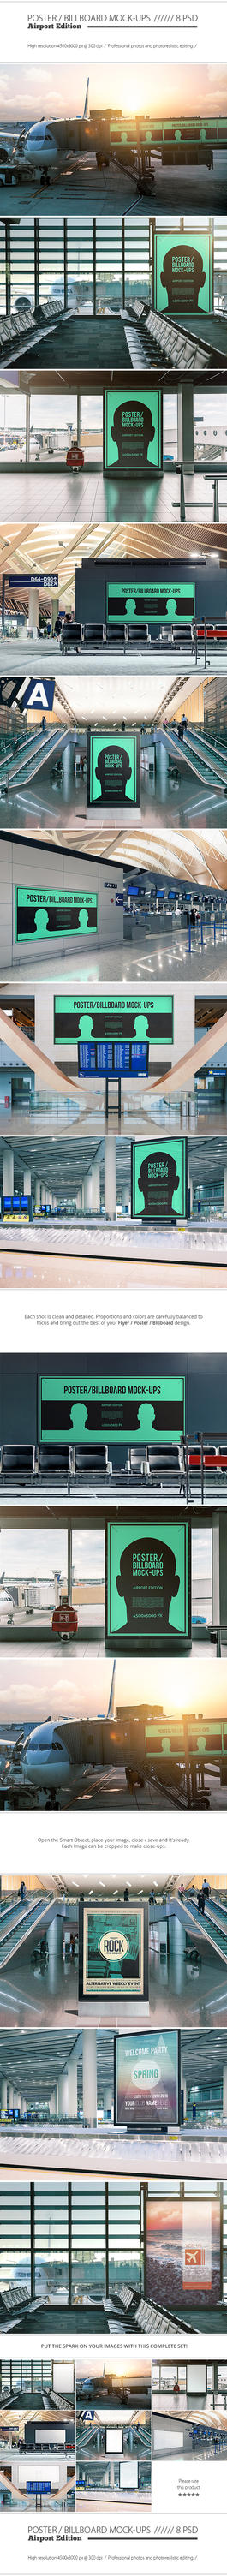 Poster / Billboard Mock-ups - Airport Edition by NuwanP